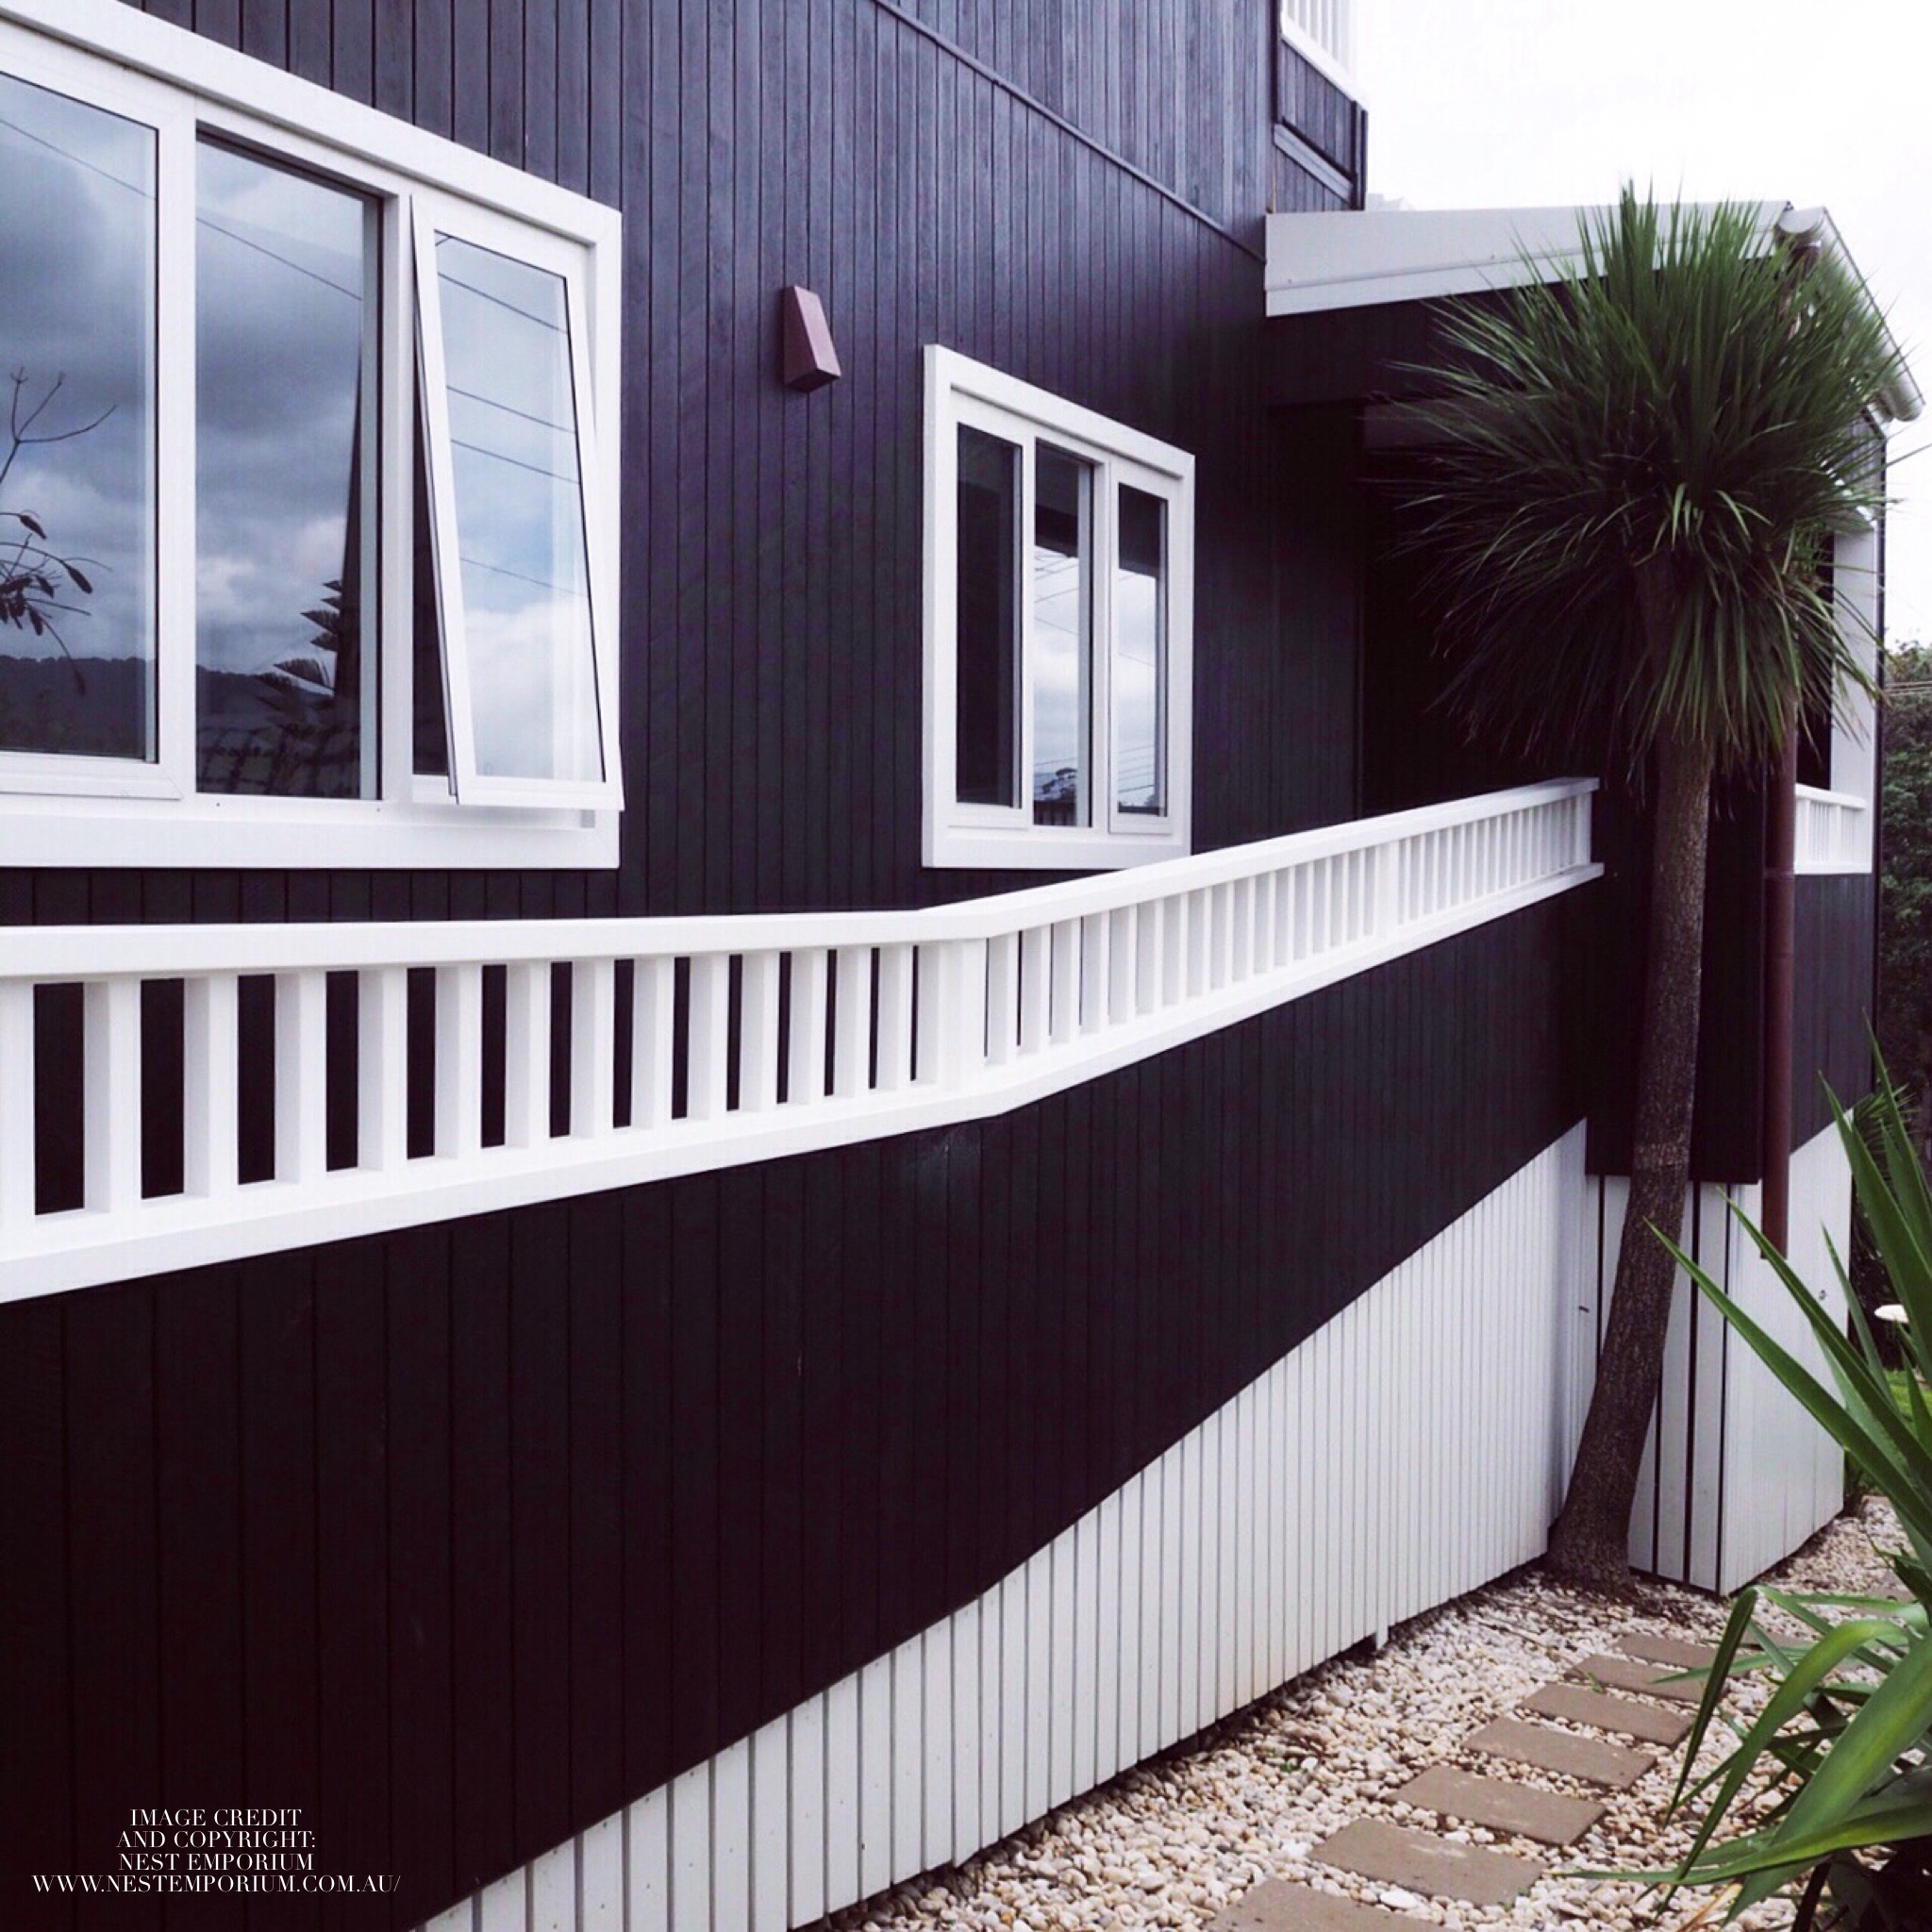 The Magnificence Of Monochrome We Love How The Garden Positively